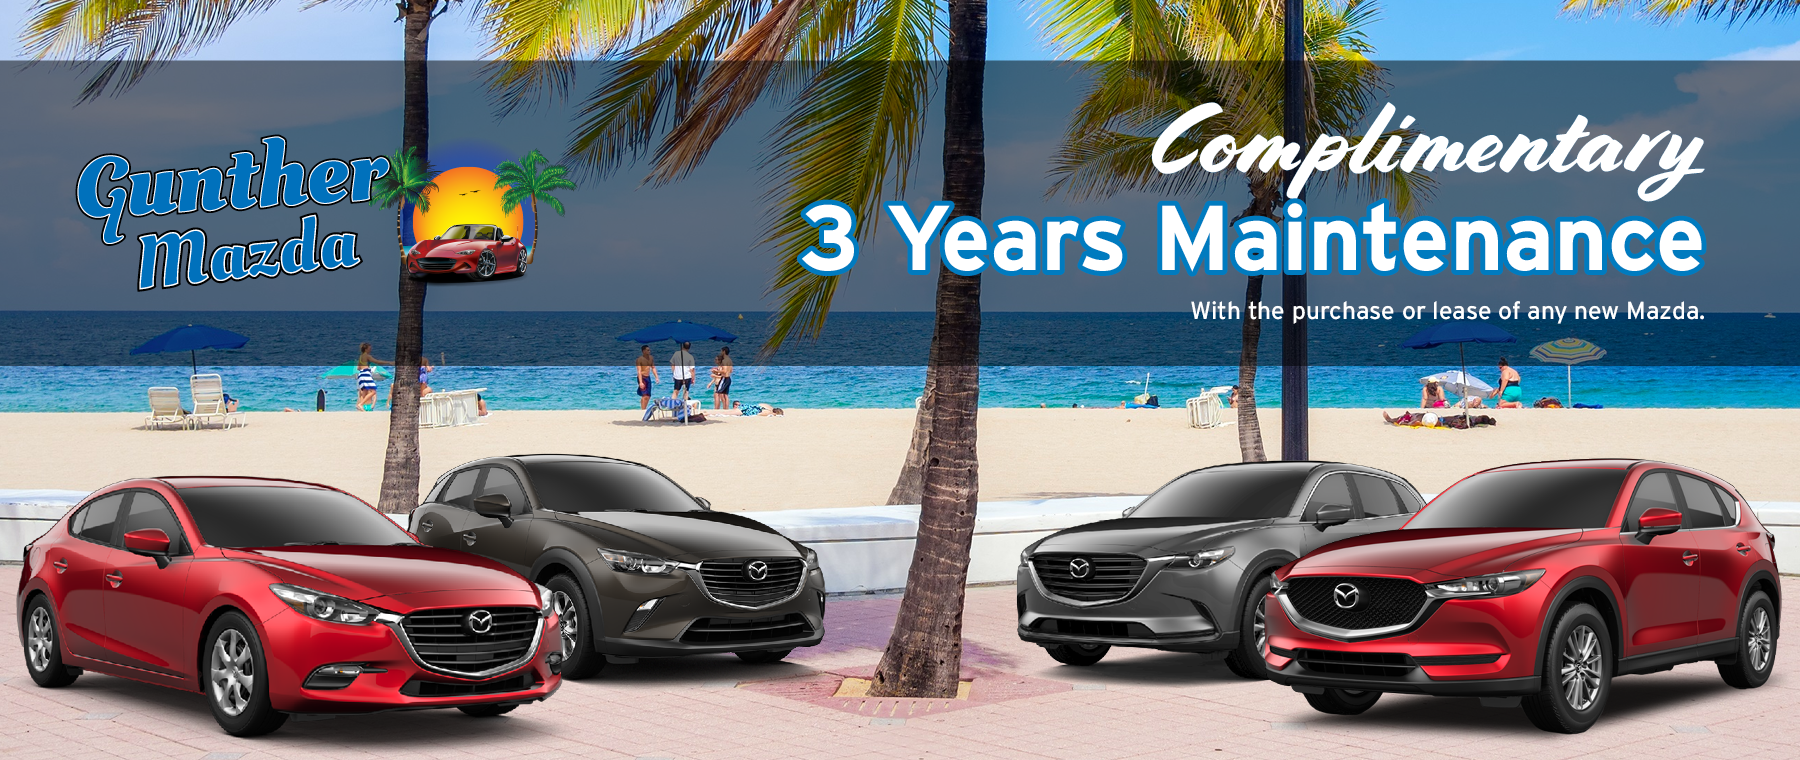 Gunther Mazda. Complimentary 3 years maintenance with the purchase or lease of a new Mazda from Gunther Mazda.